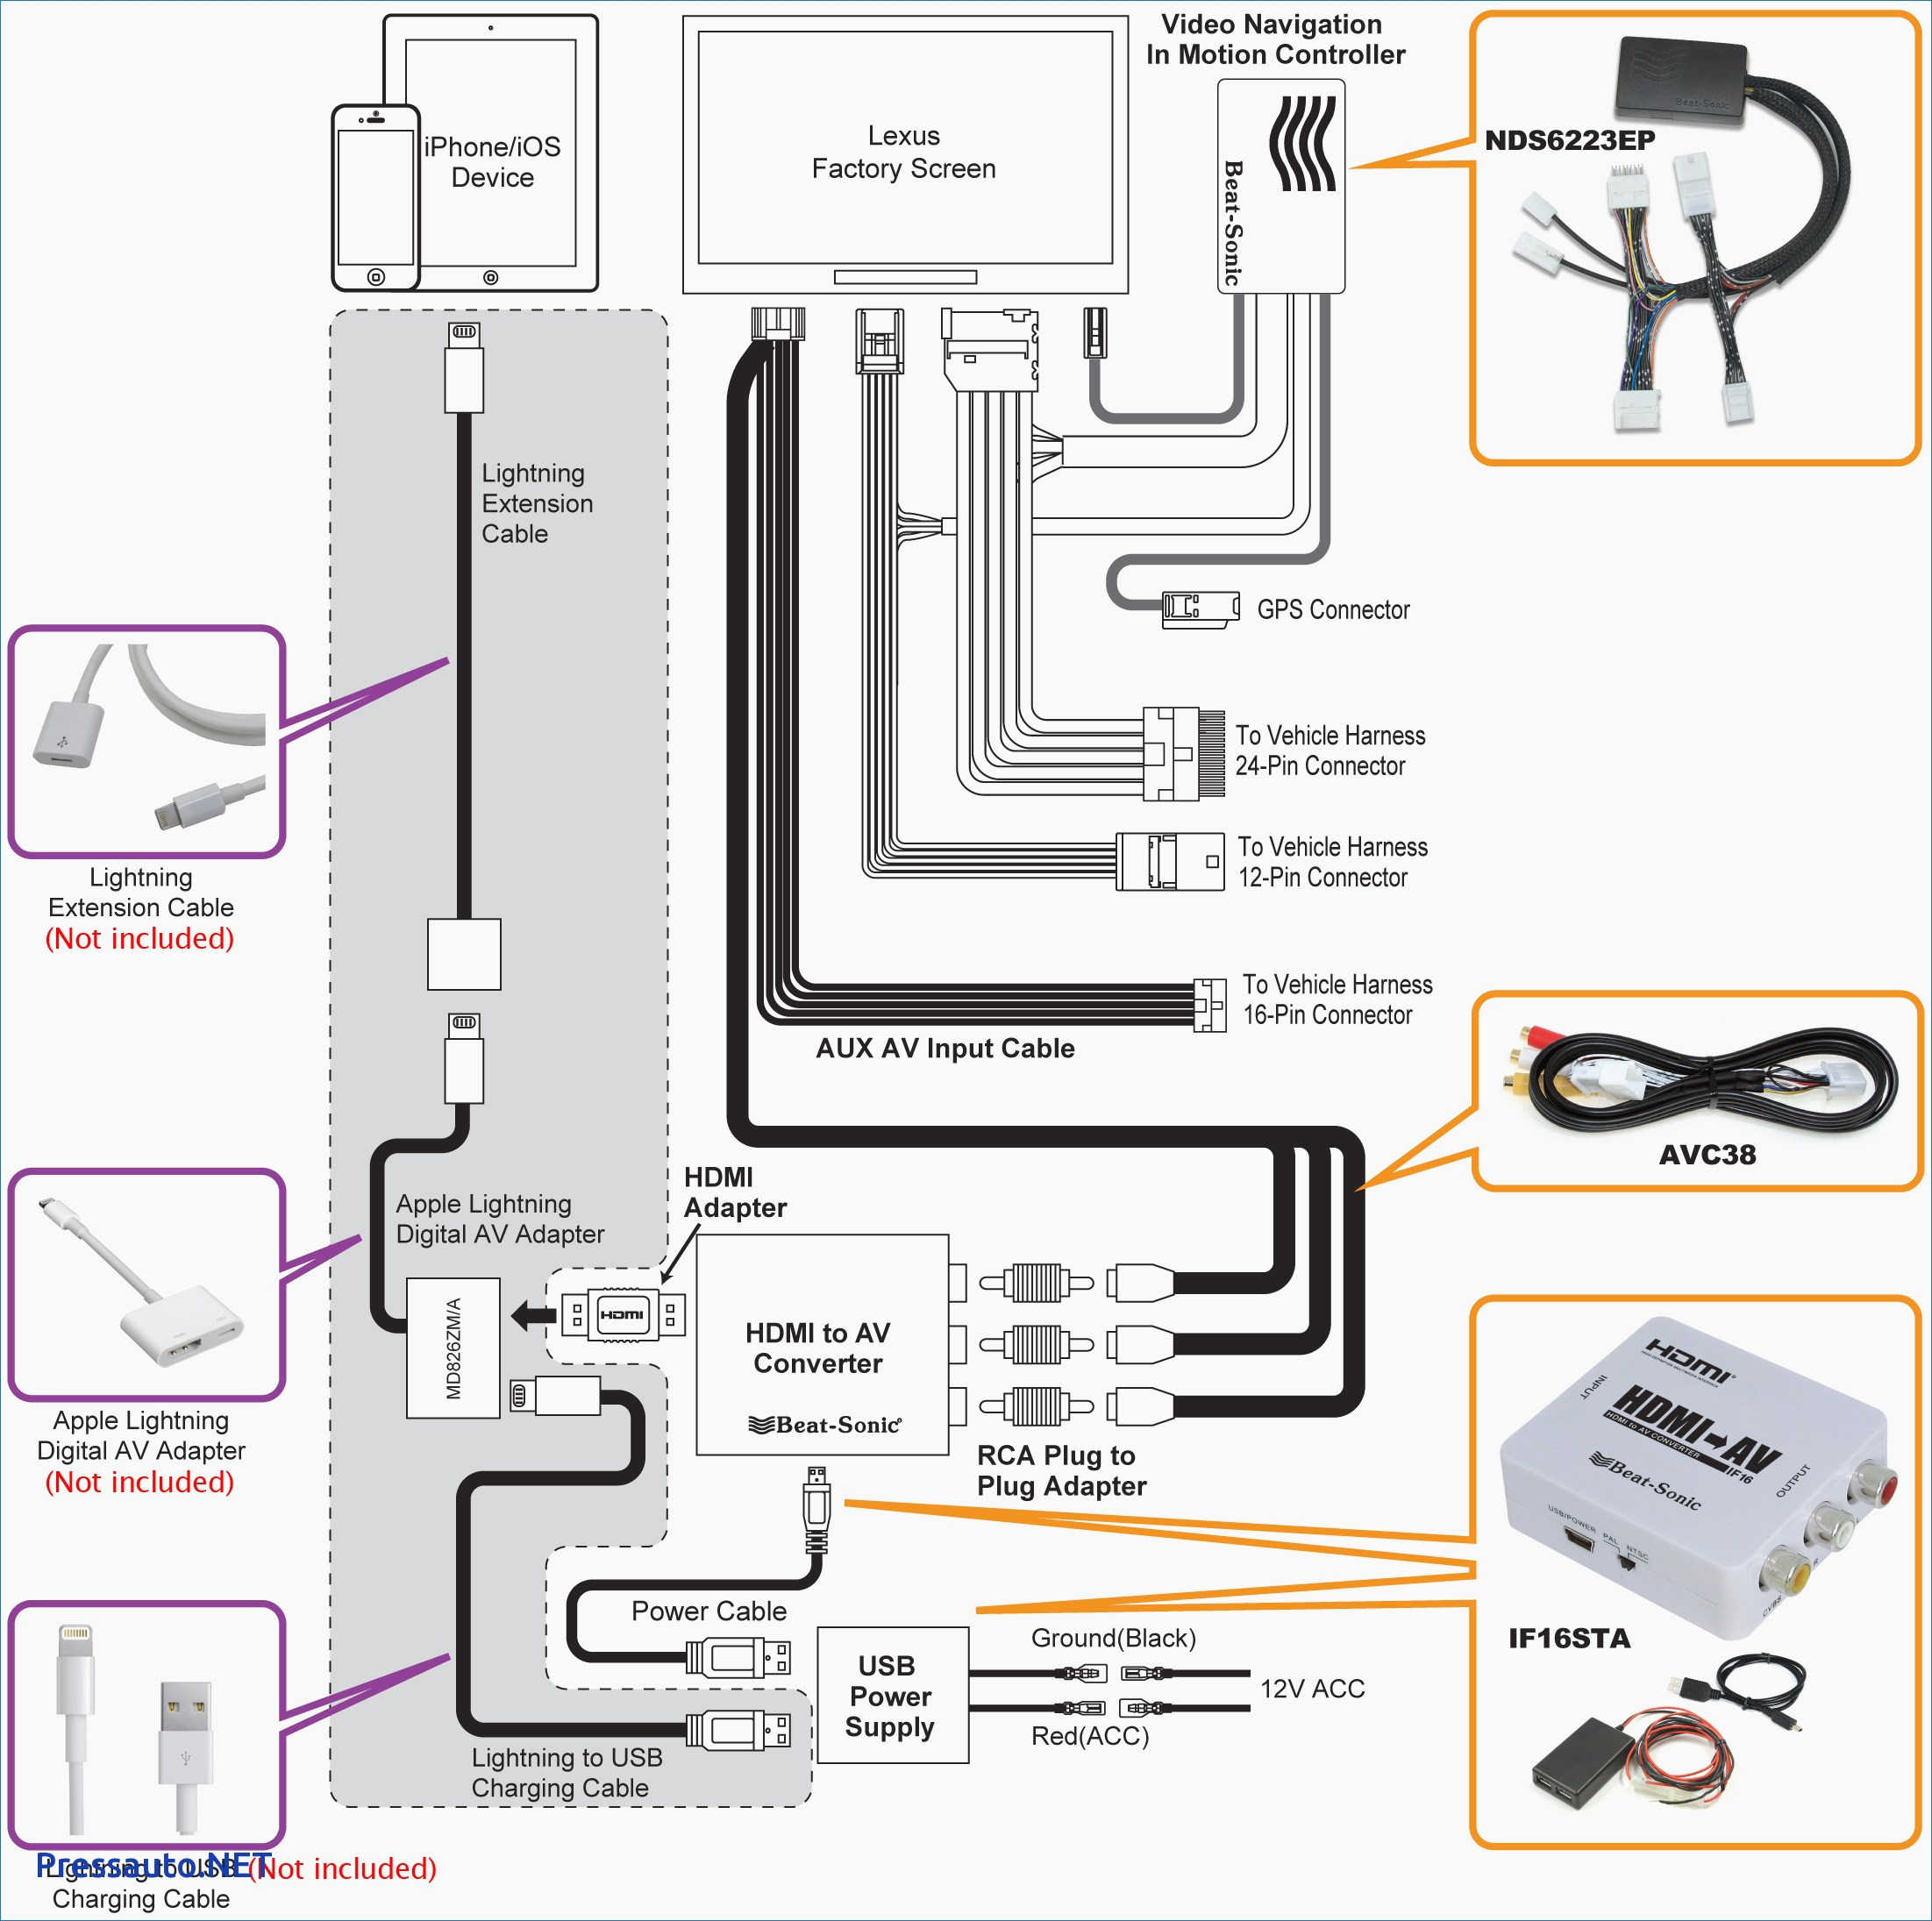 Wiring Diagram For Usb Cable To Ipod